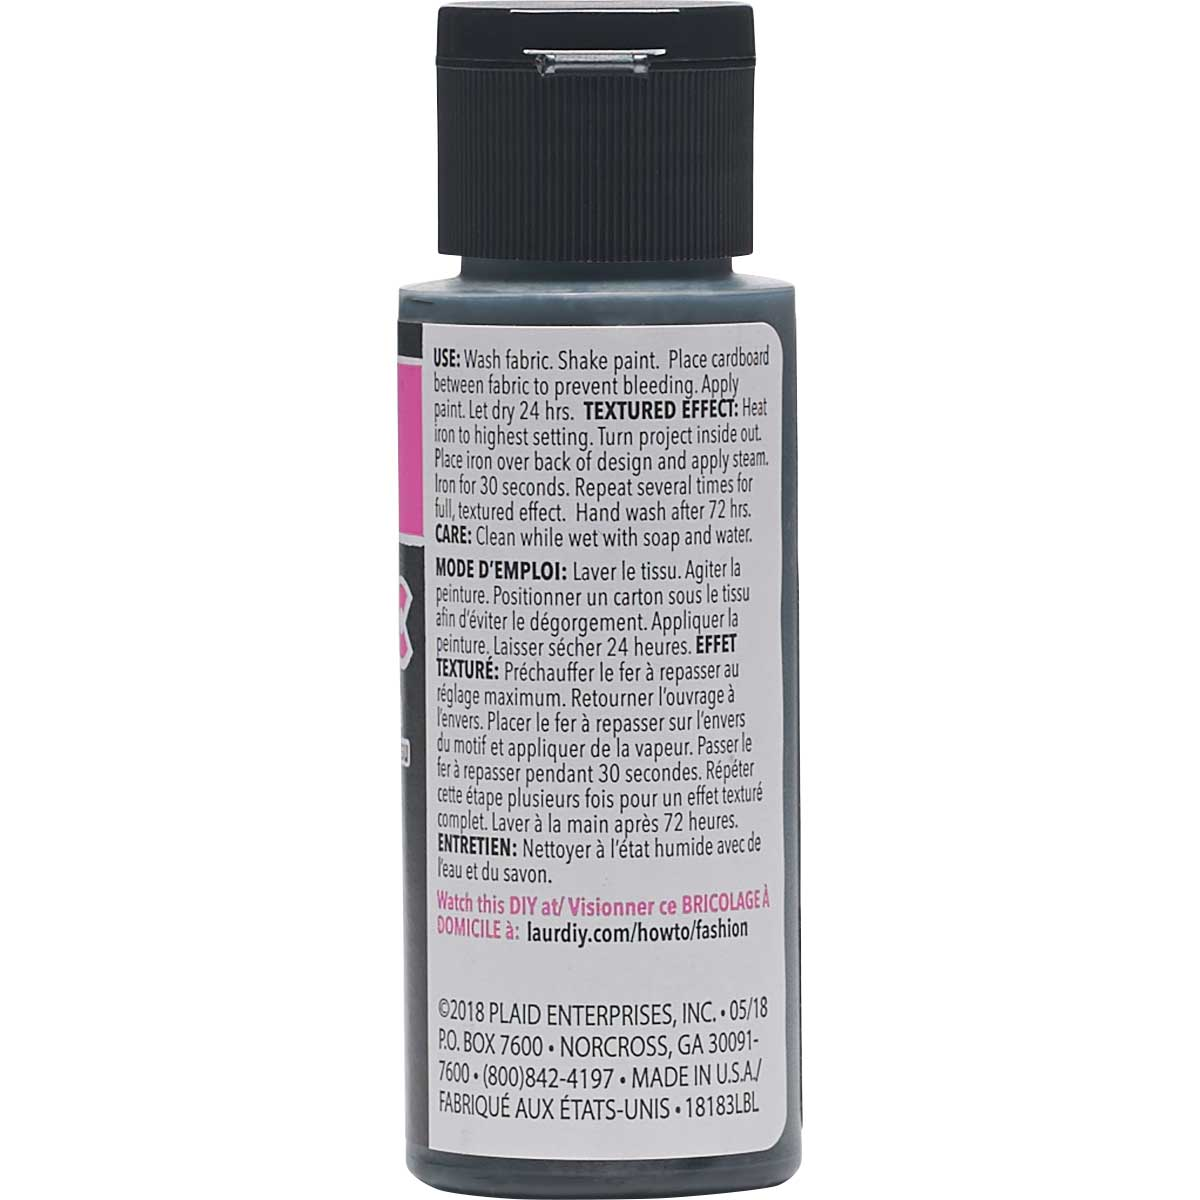 LaurDIY ® Texturific™ Fabric Paint - False Alarm, 2 oz.